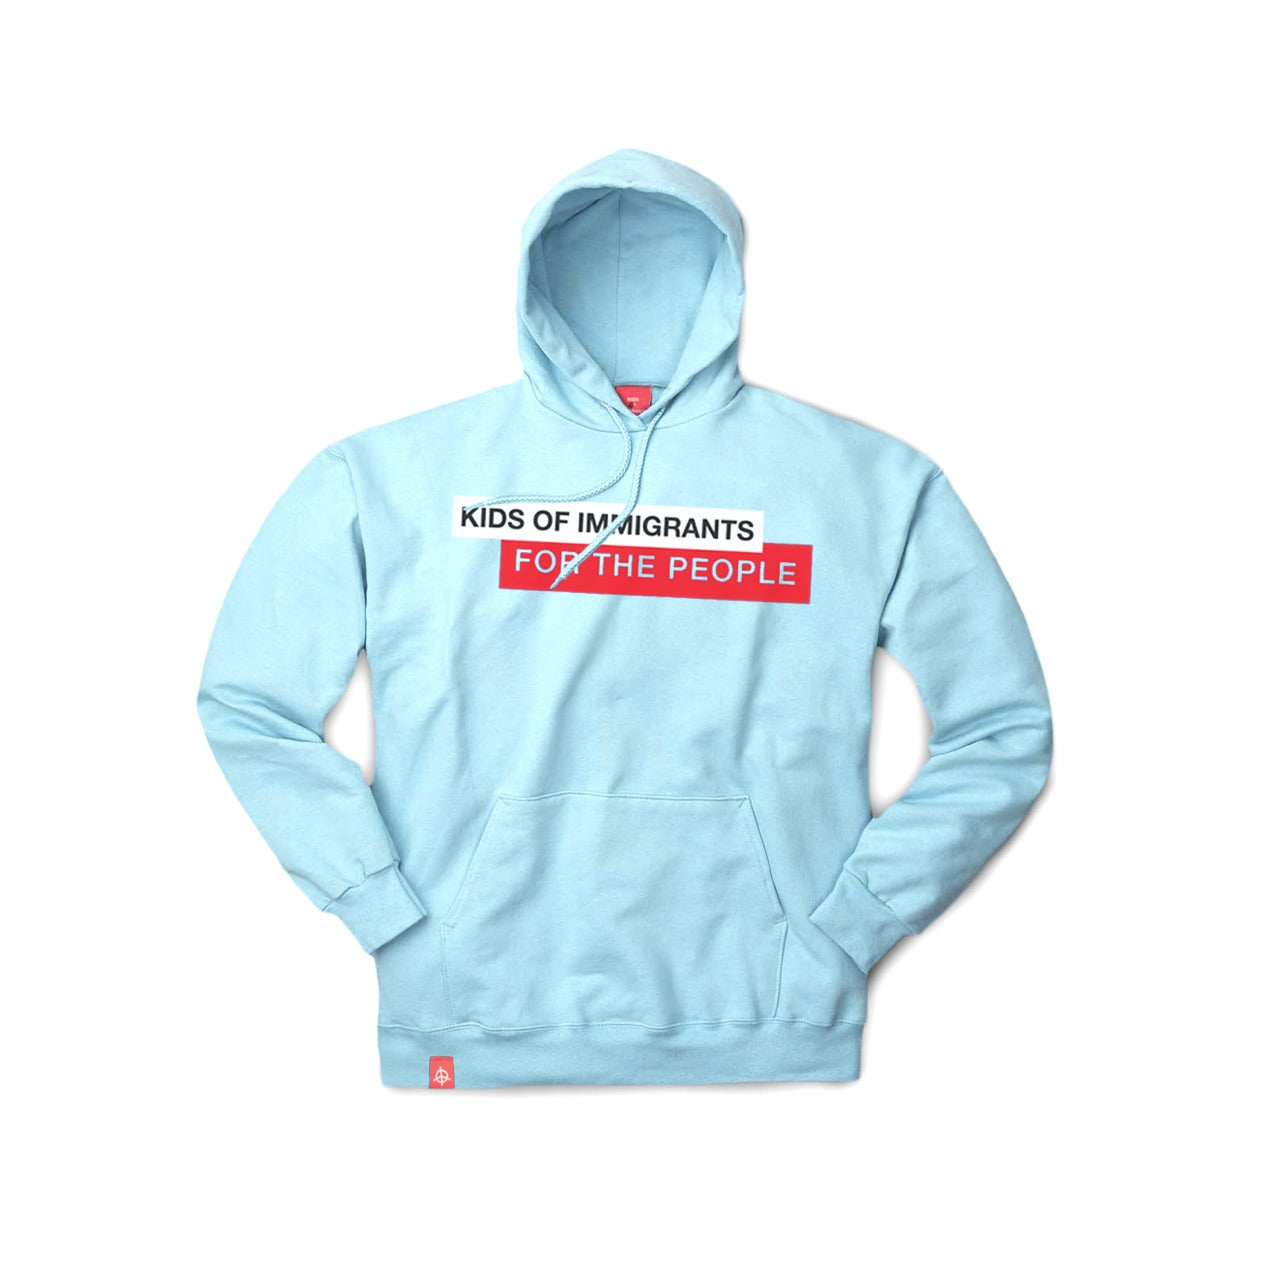 KIDS OF IMMIGRANTS FOR THE PEOPLE HOODIE - BLUE